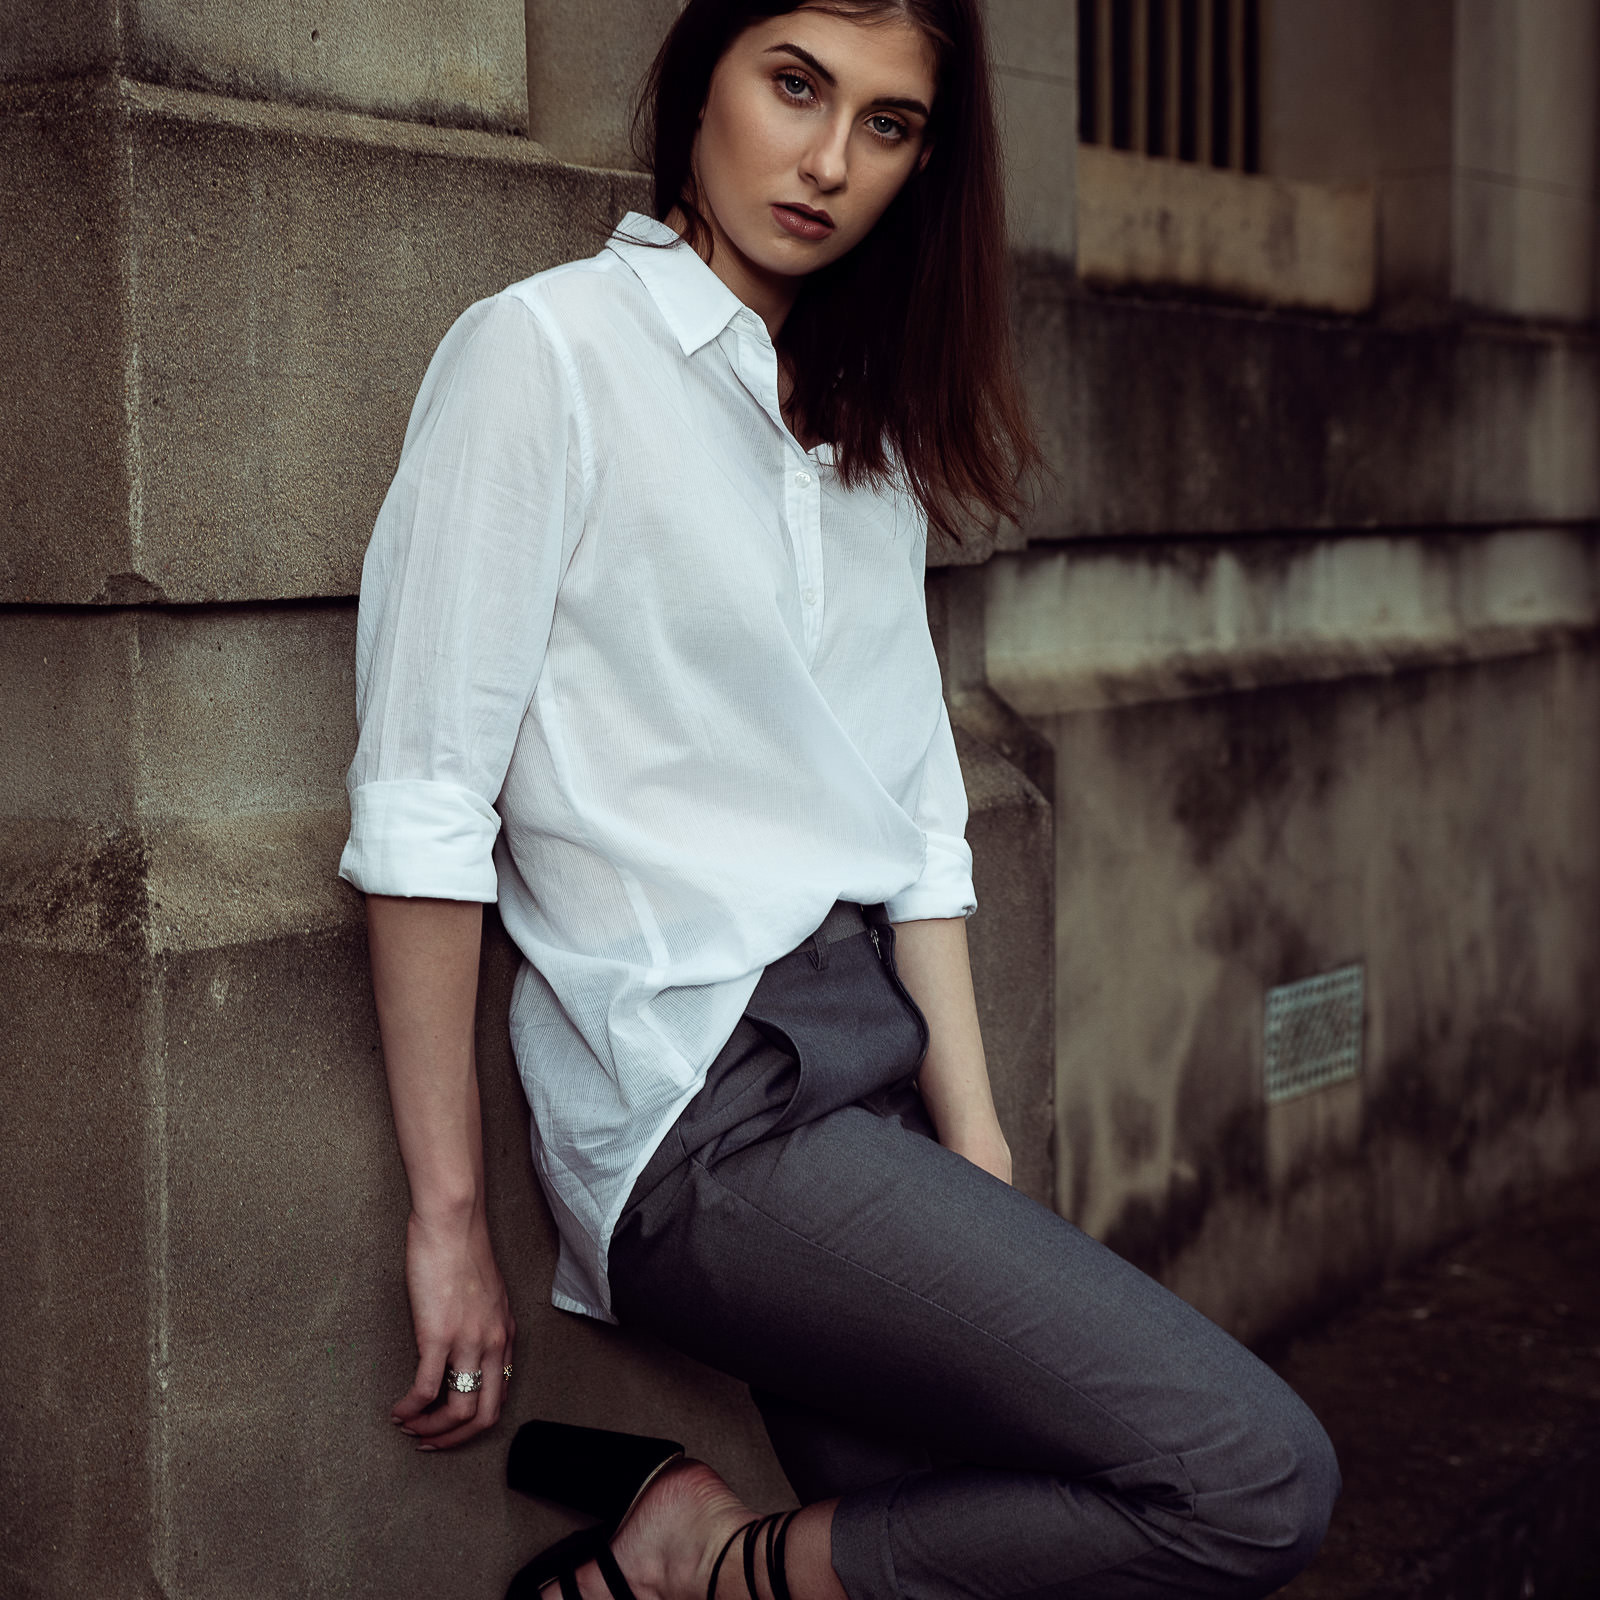 Maddison Hill model in urban environment wearing button up shirt and pants.